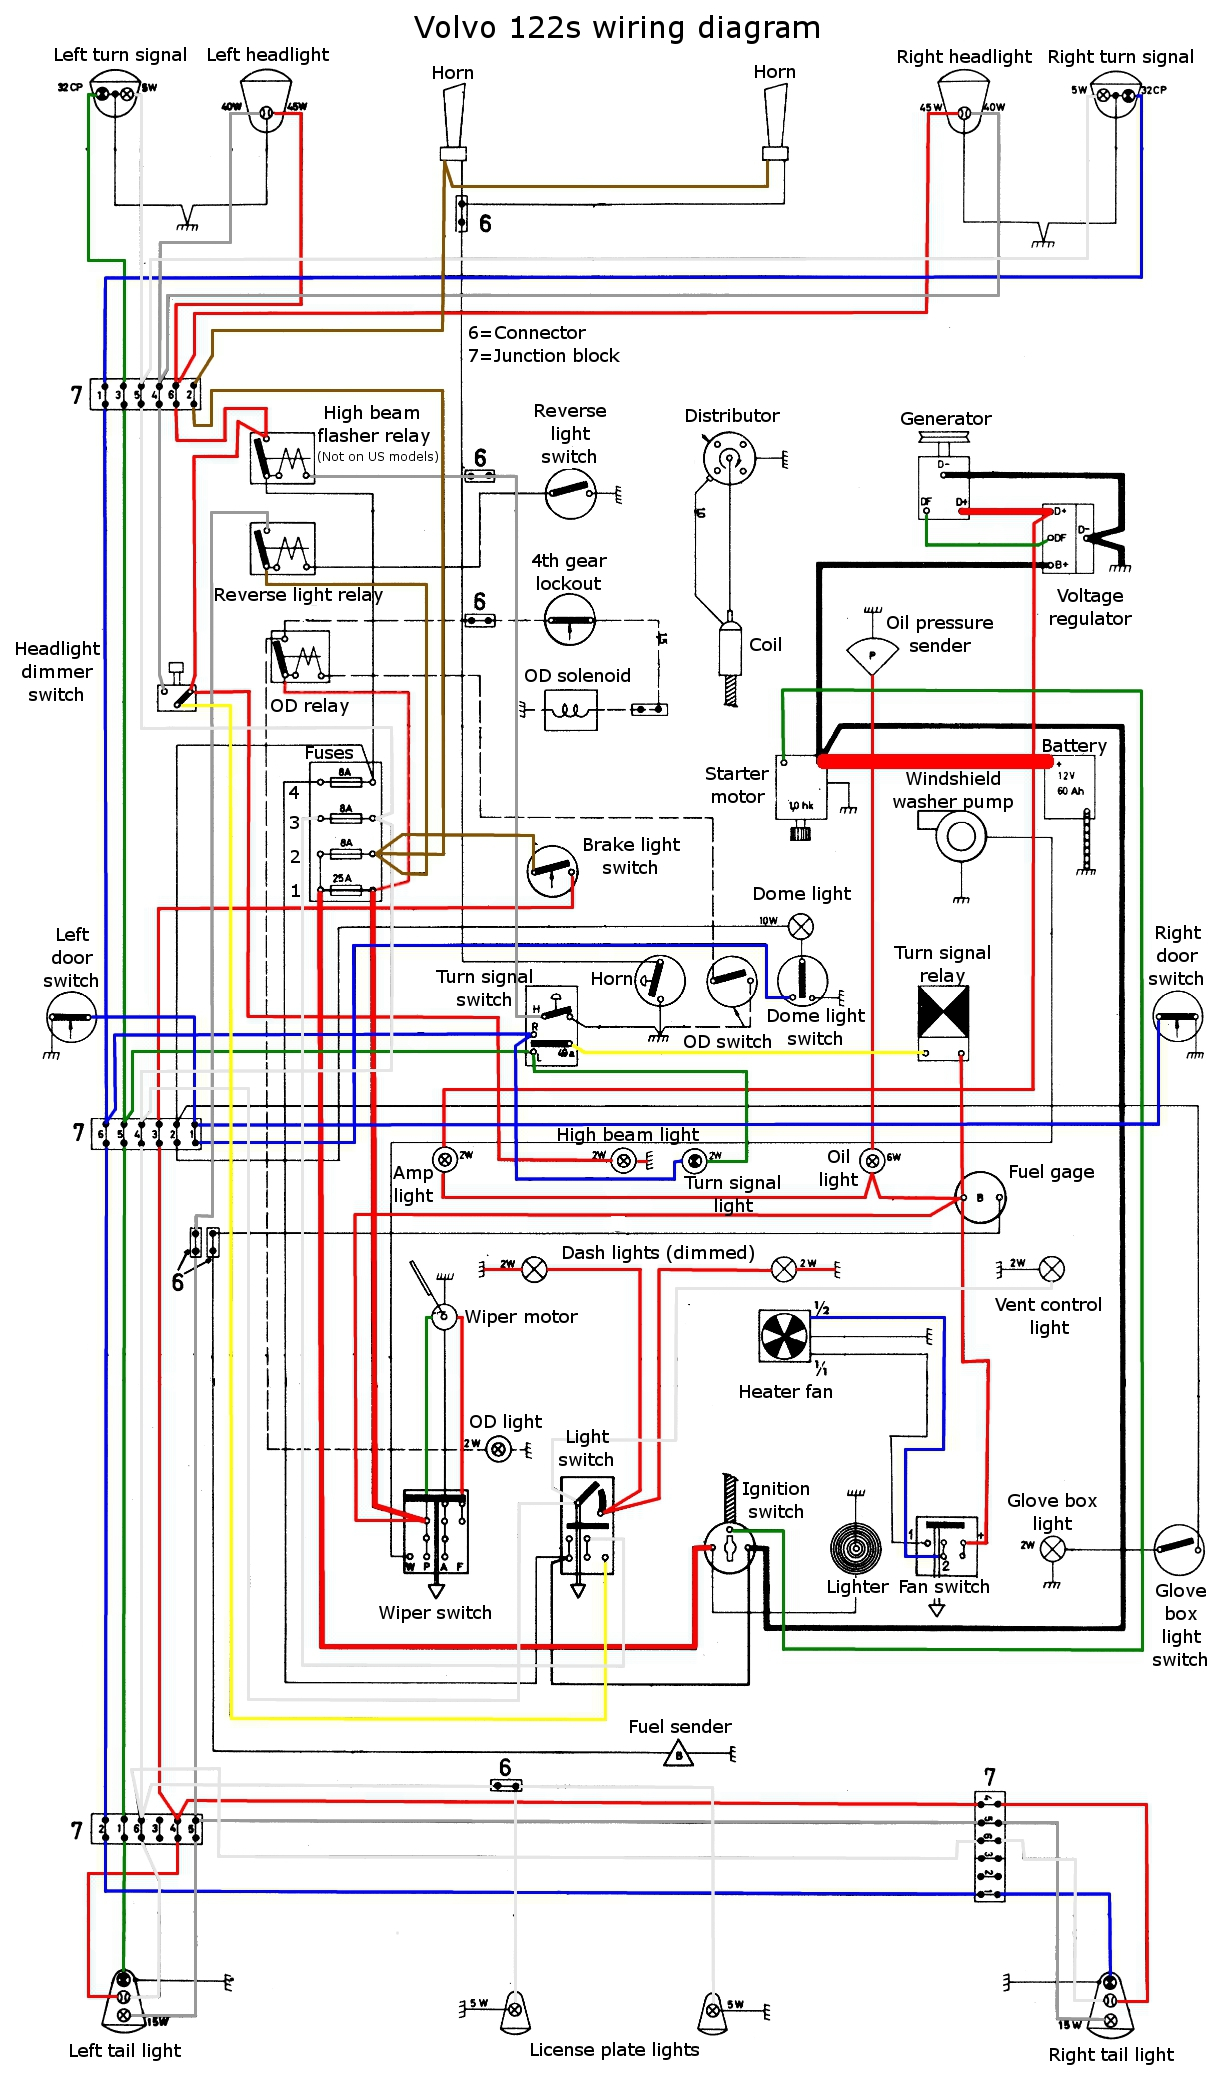 122 wiring diagram color wiring gremlins Vw R32 Wiring Diagram at panicattacktreatment.co